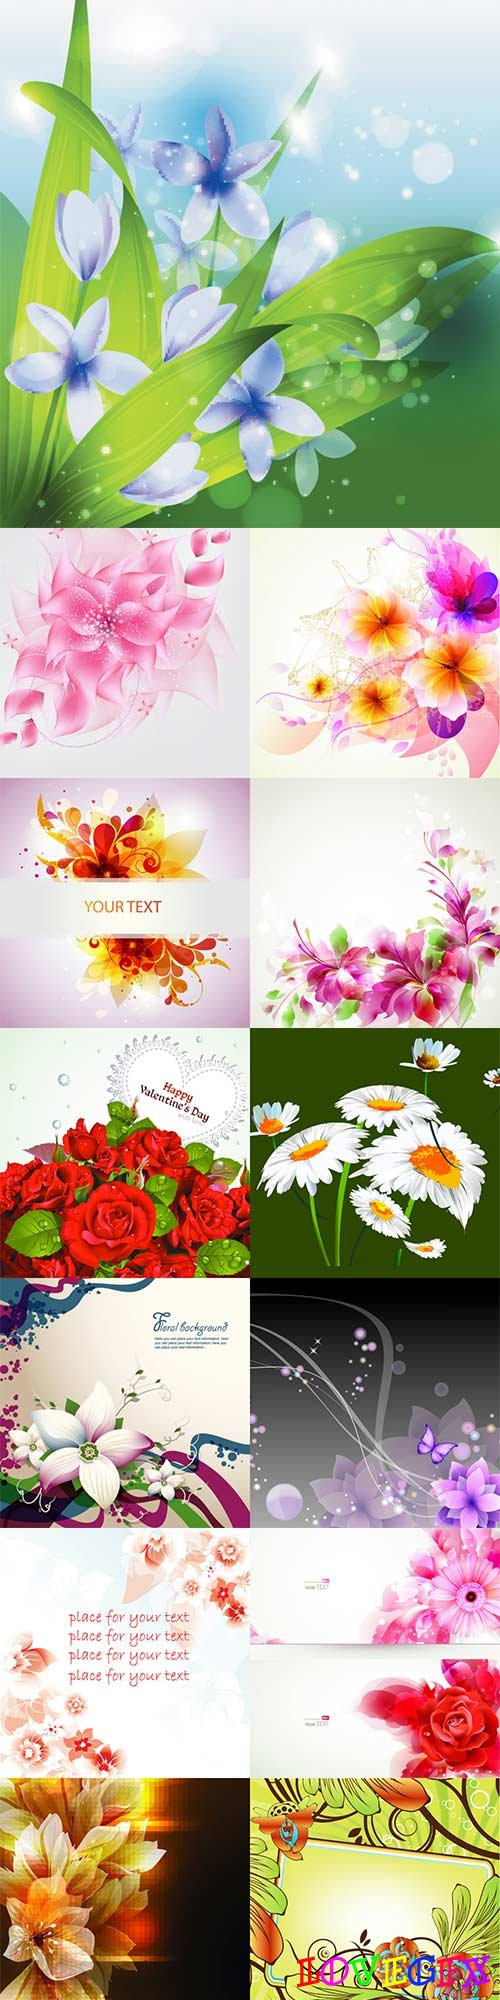 Awesome vector flowers - 14